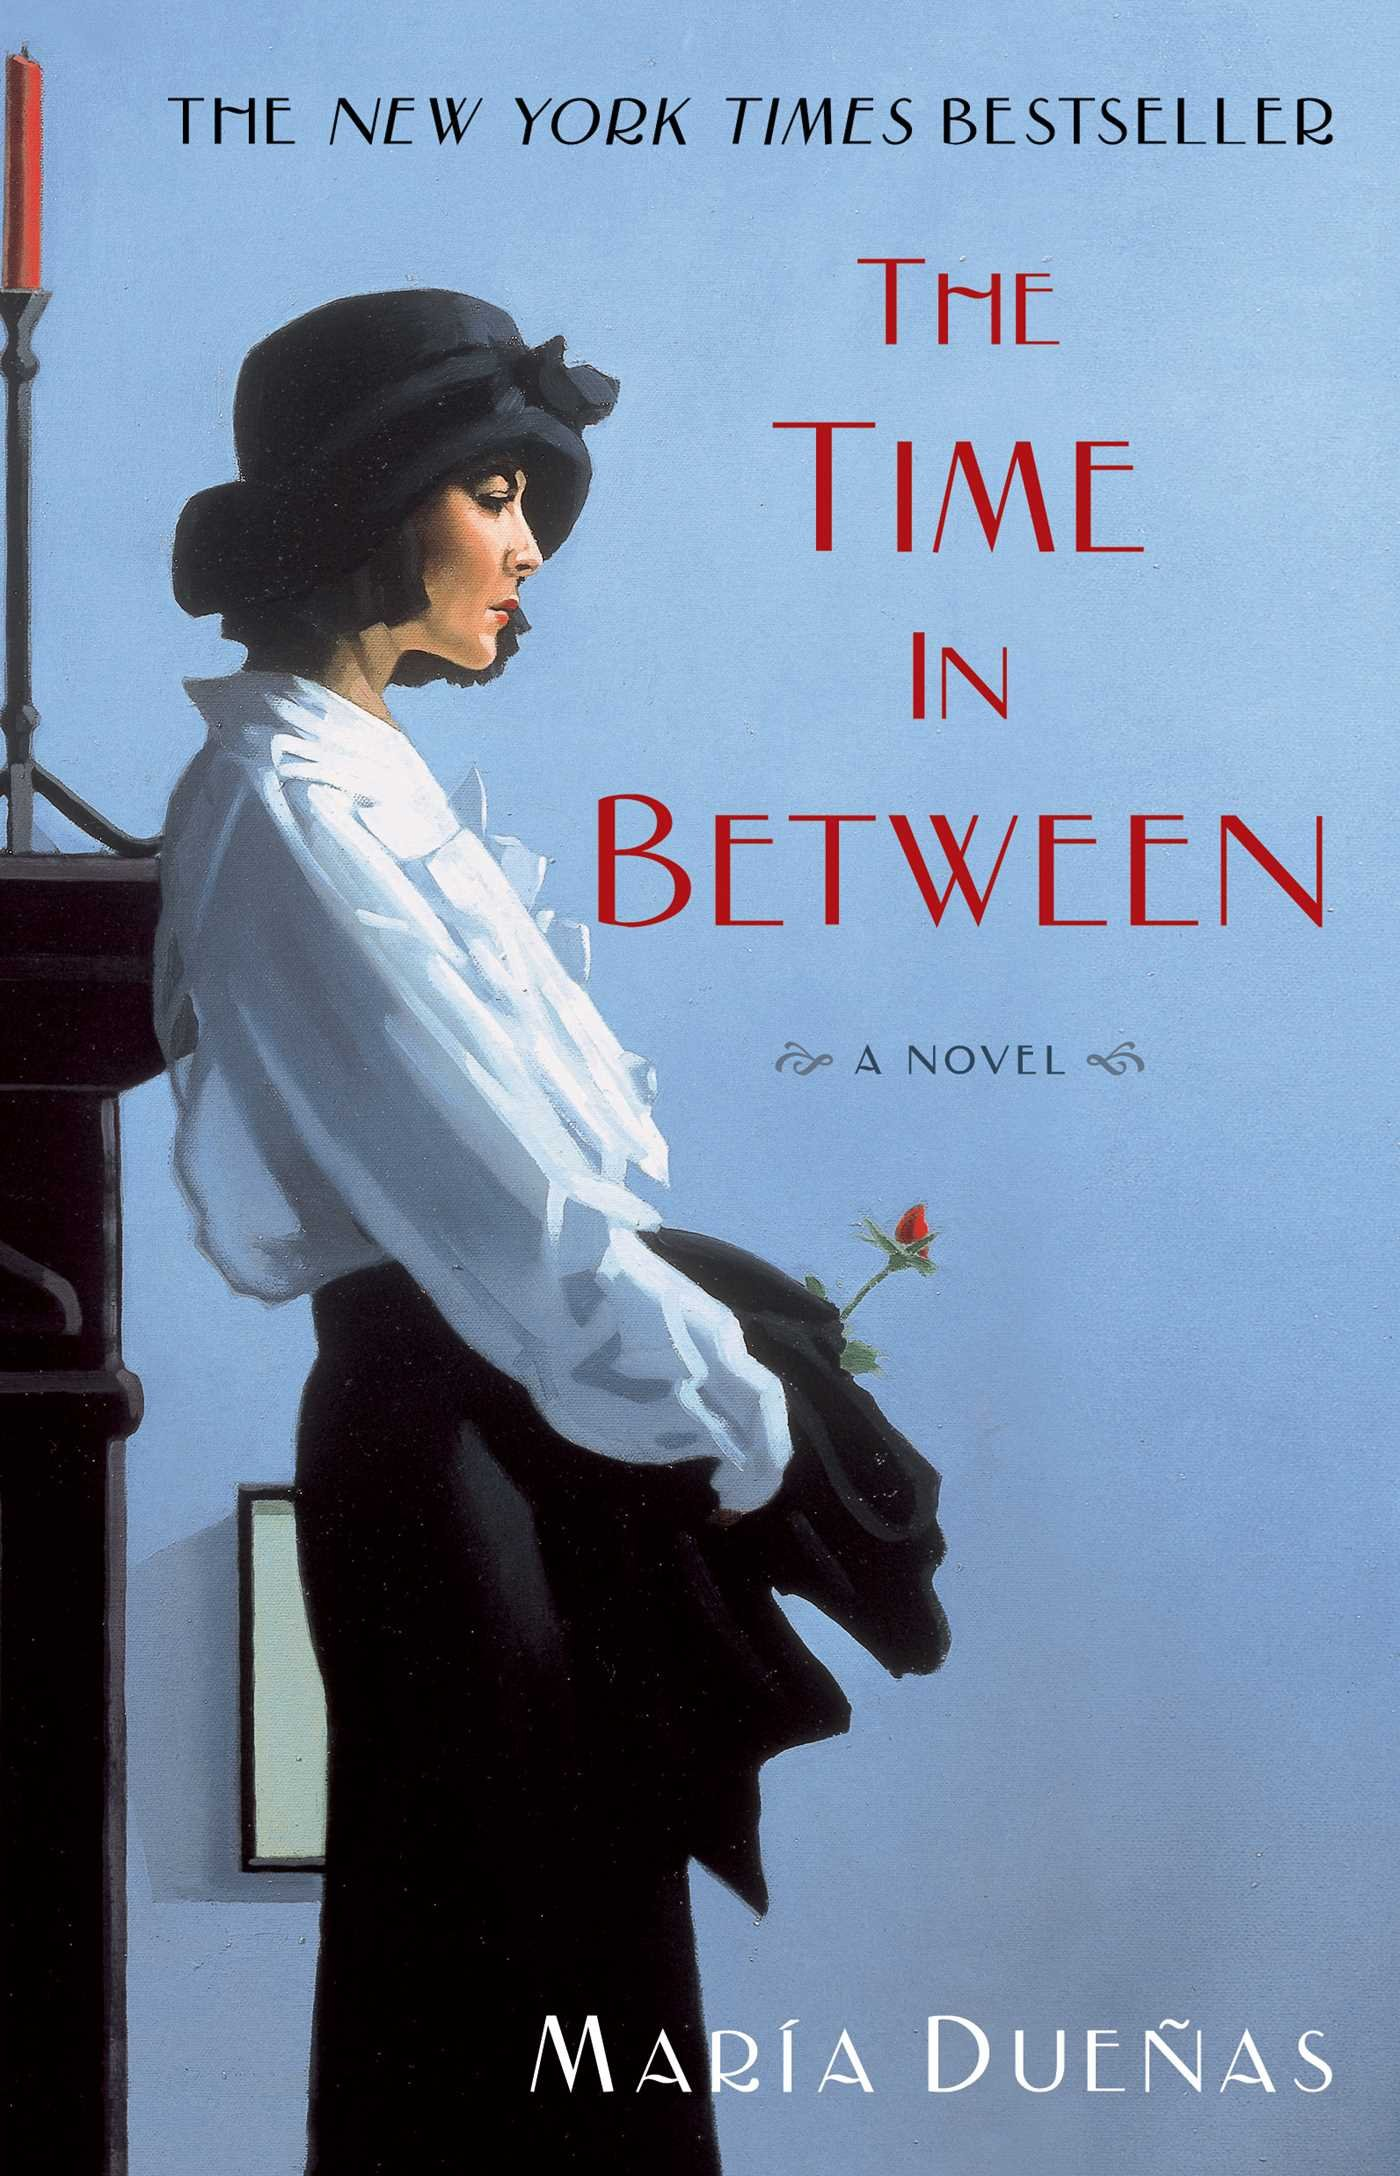 the time in between - maría dueñas